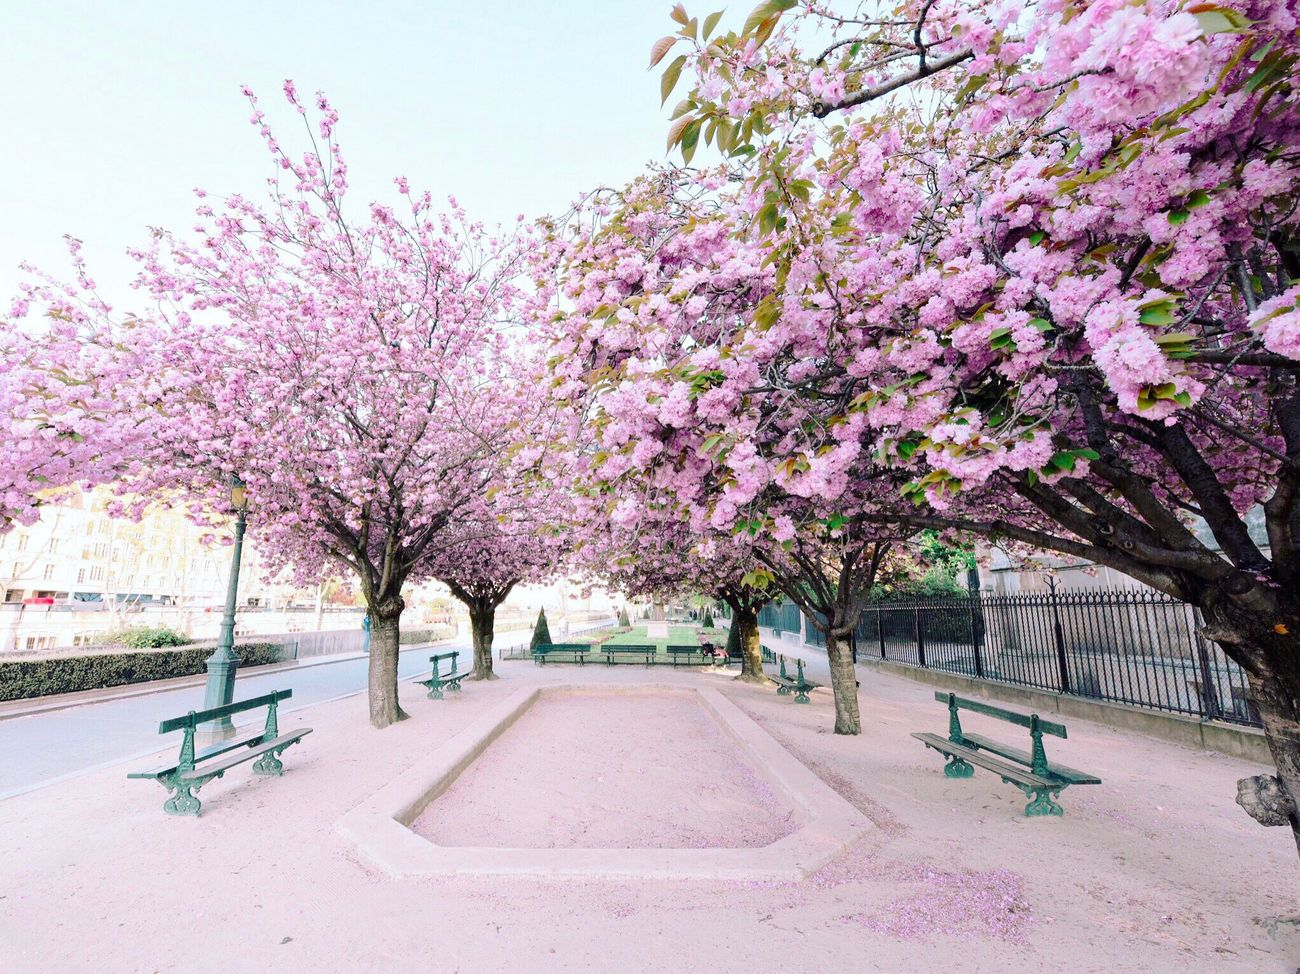 Waiting for spring! Bonsoir Paris Flower Tree Growth Nature Blossom EyeEm Best Shots Parisweloveyou Paris Photooftheday Pink Color Cherry Blossoms